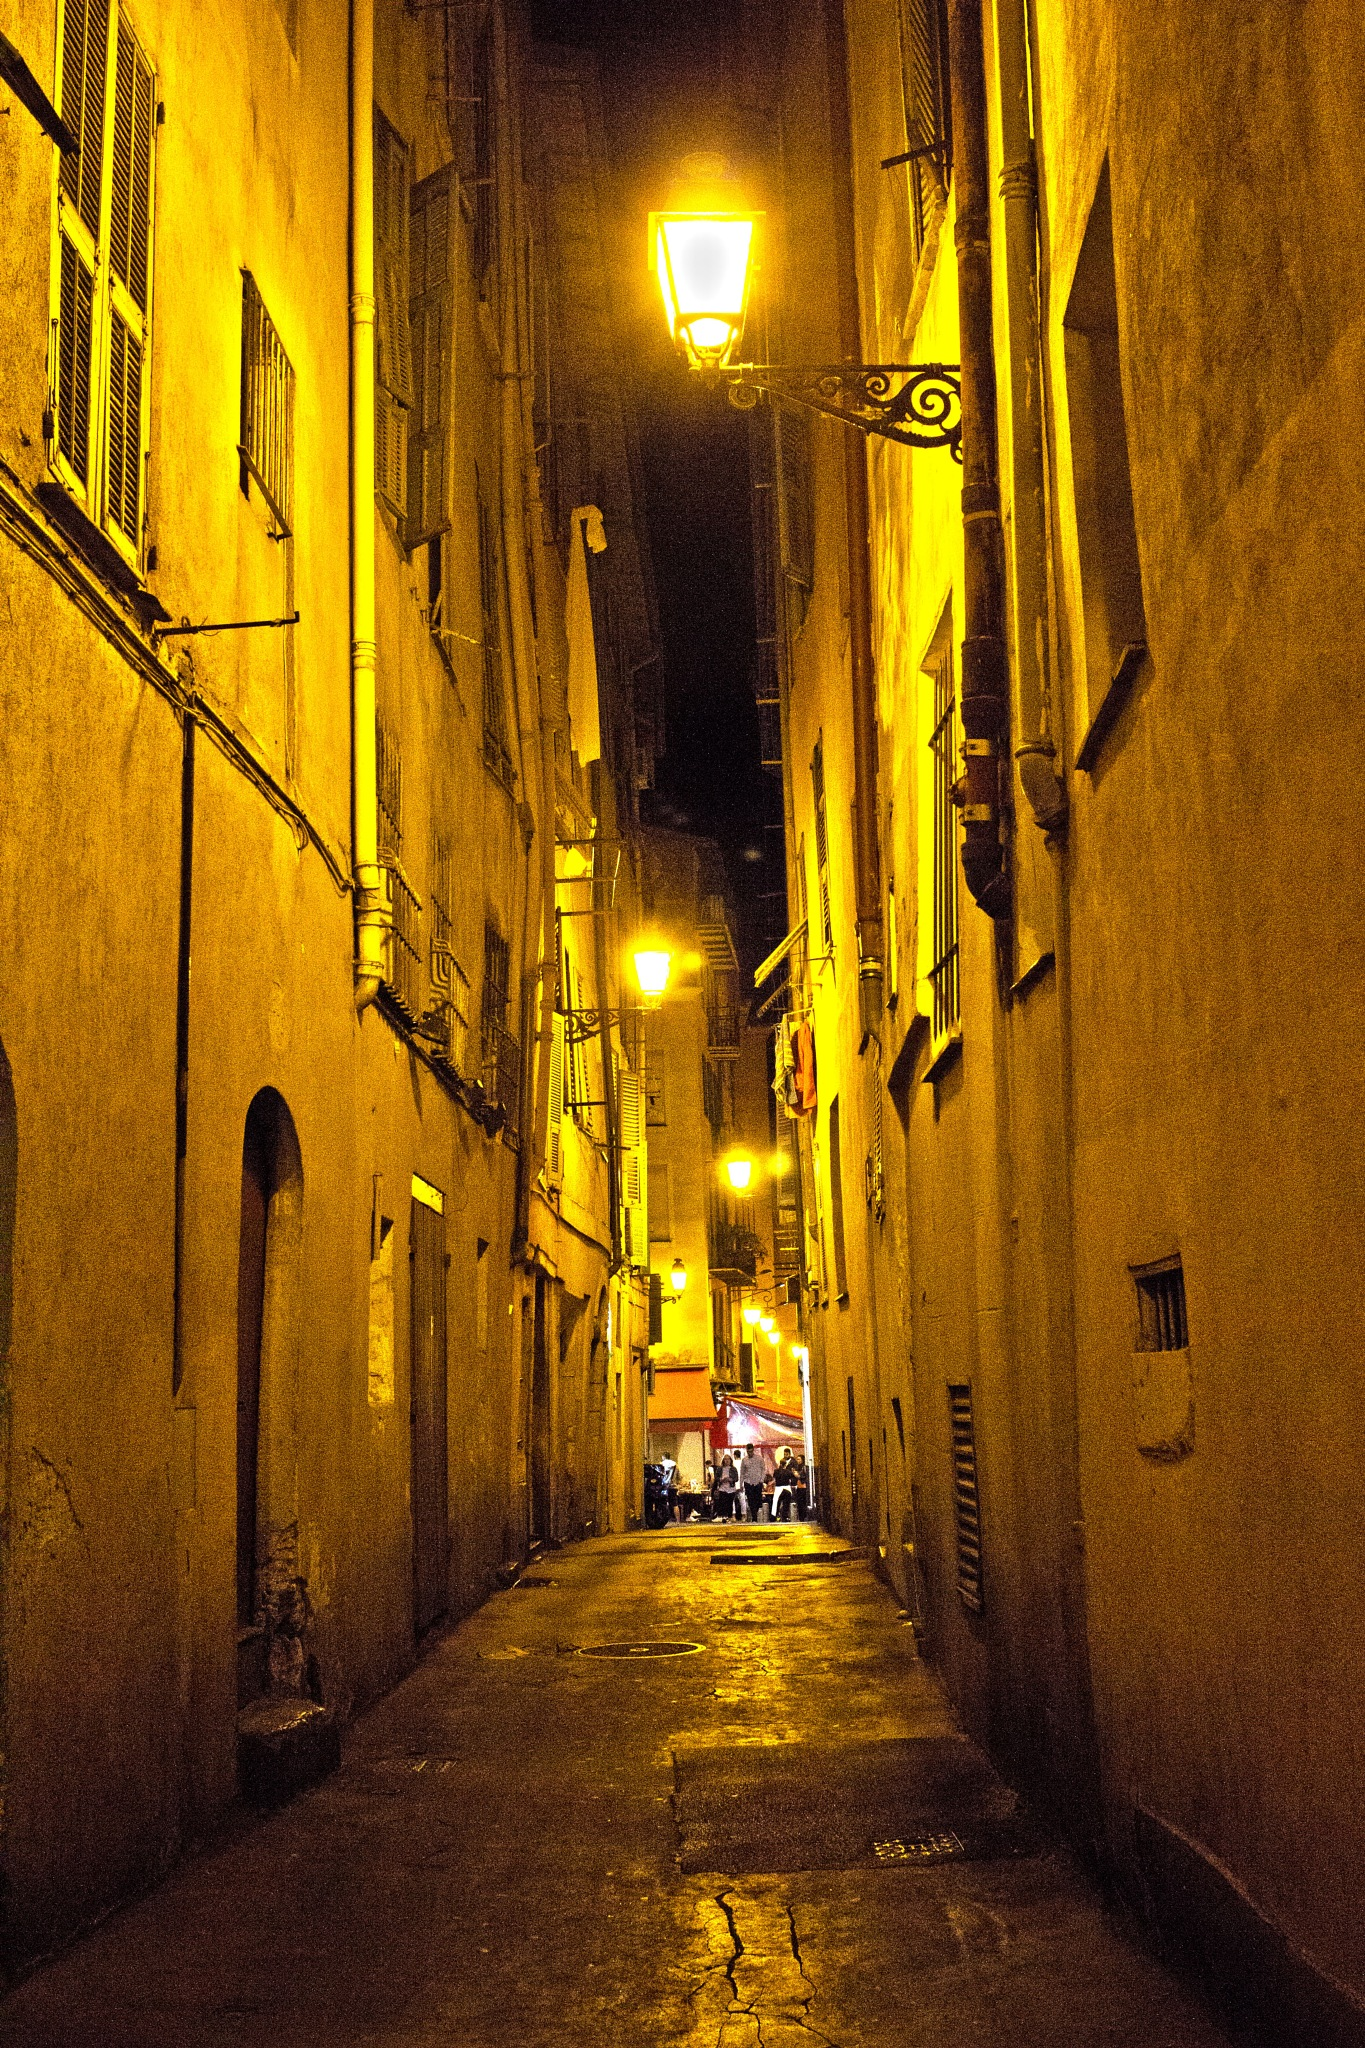 Night in old town by AvieW